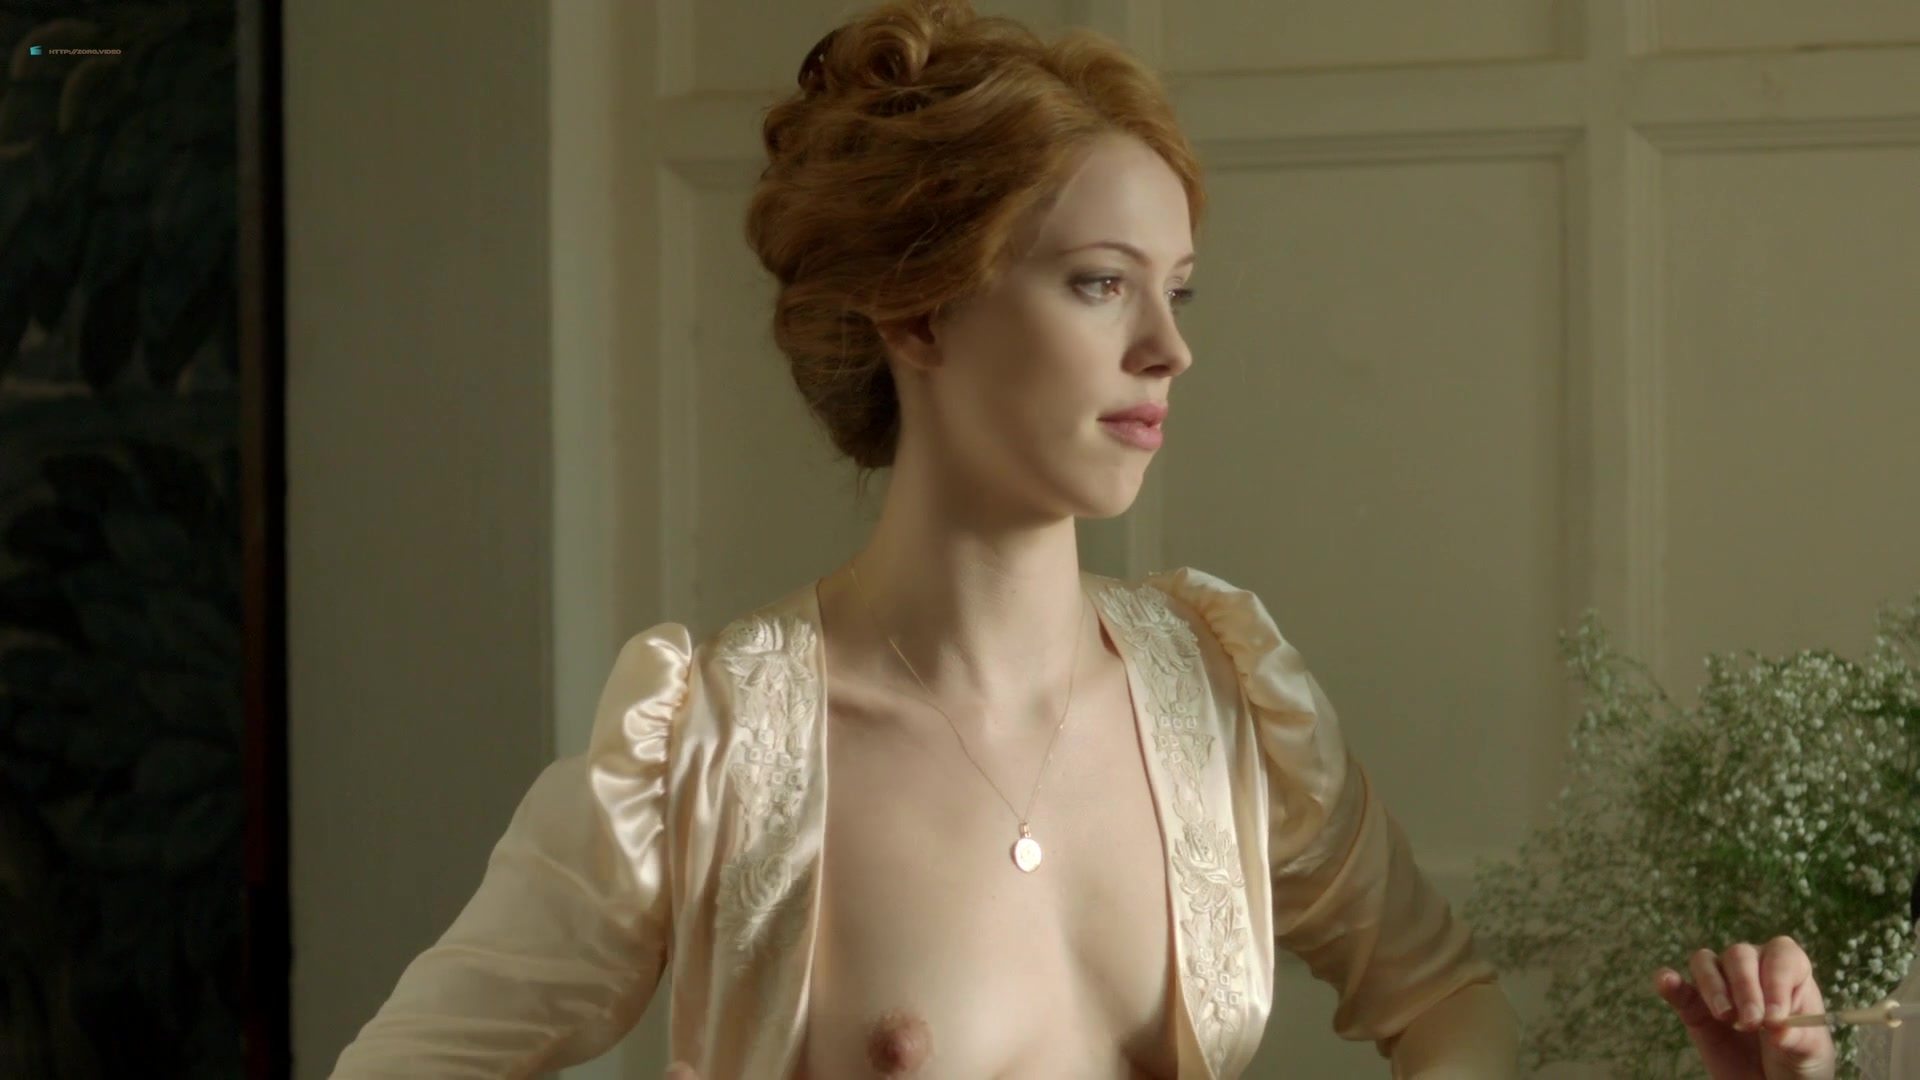 Rebecca Hall, Adelaide Clemens Nude - Parades End 2012 -3782